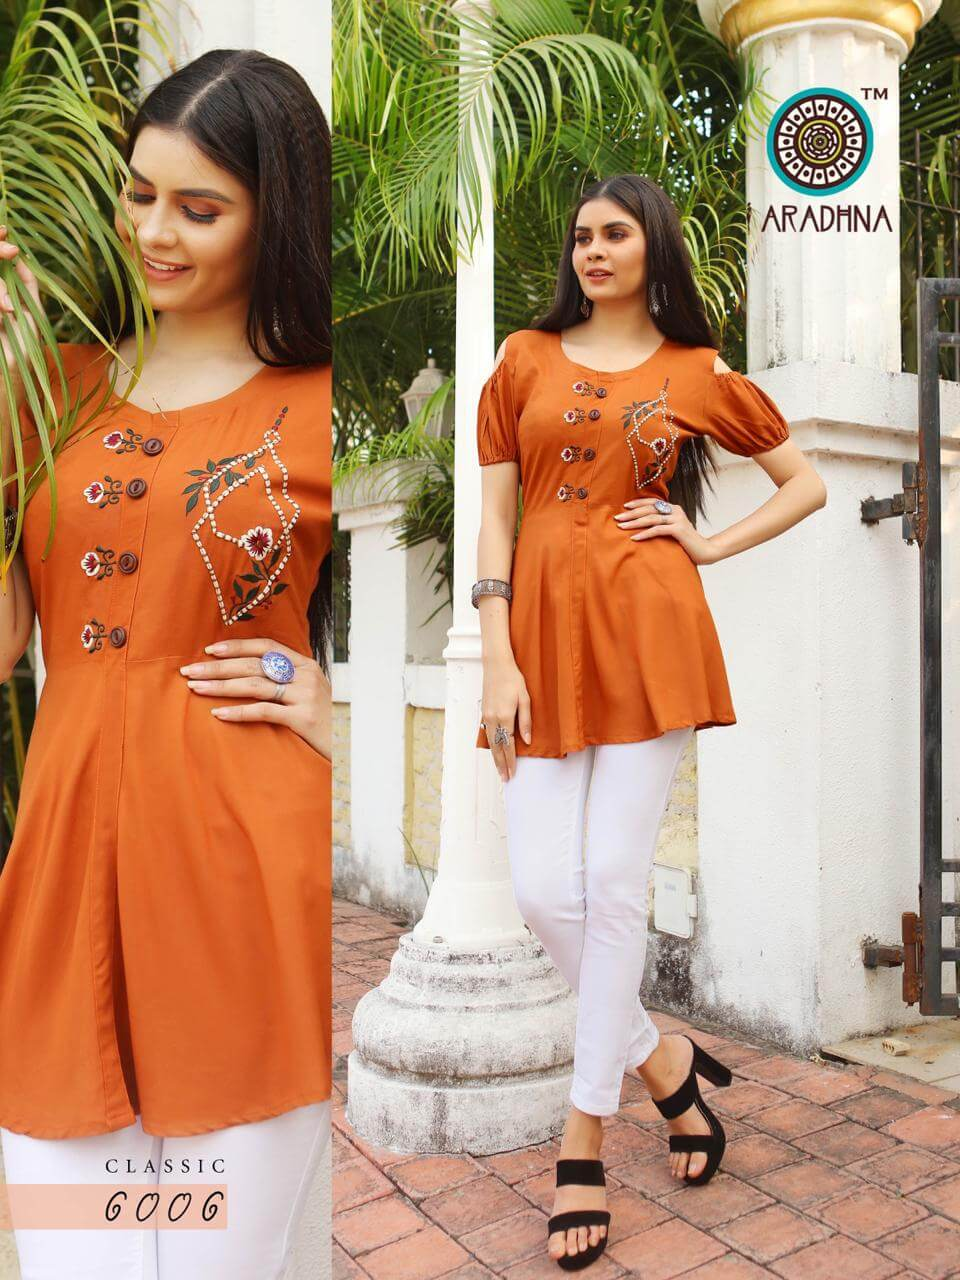 Aradhana Classic 6 collection 7